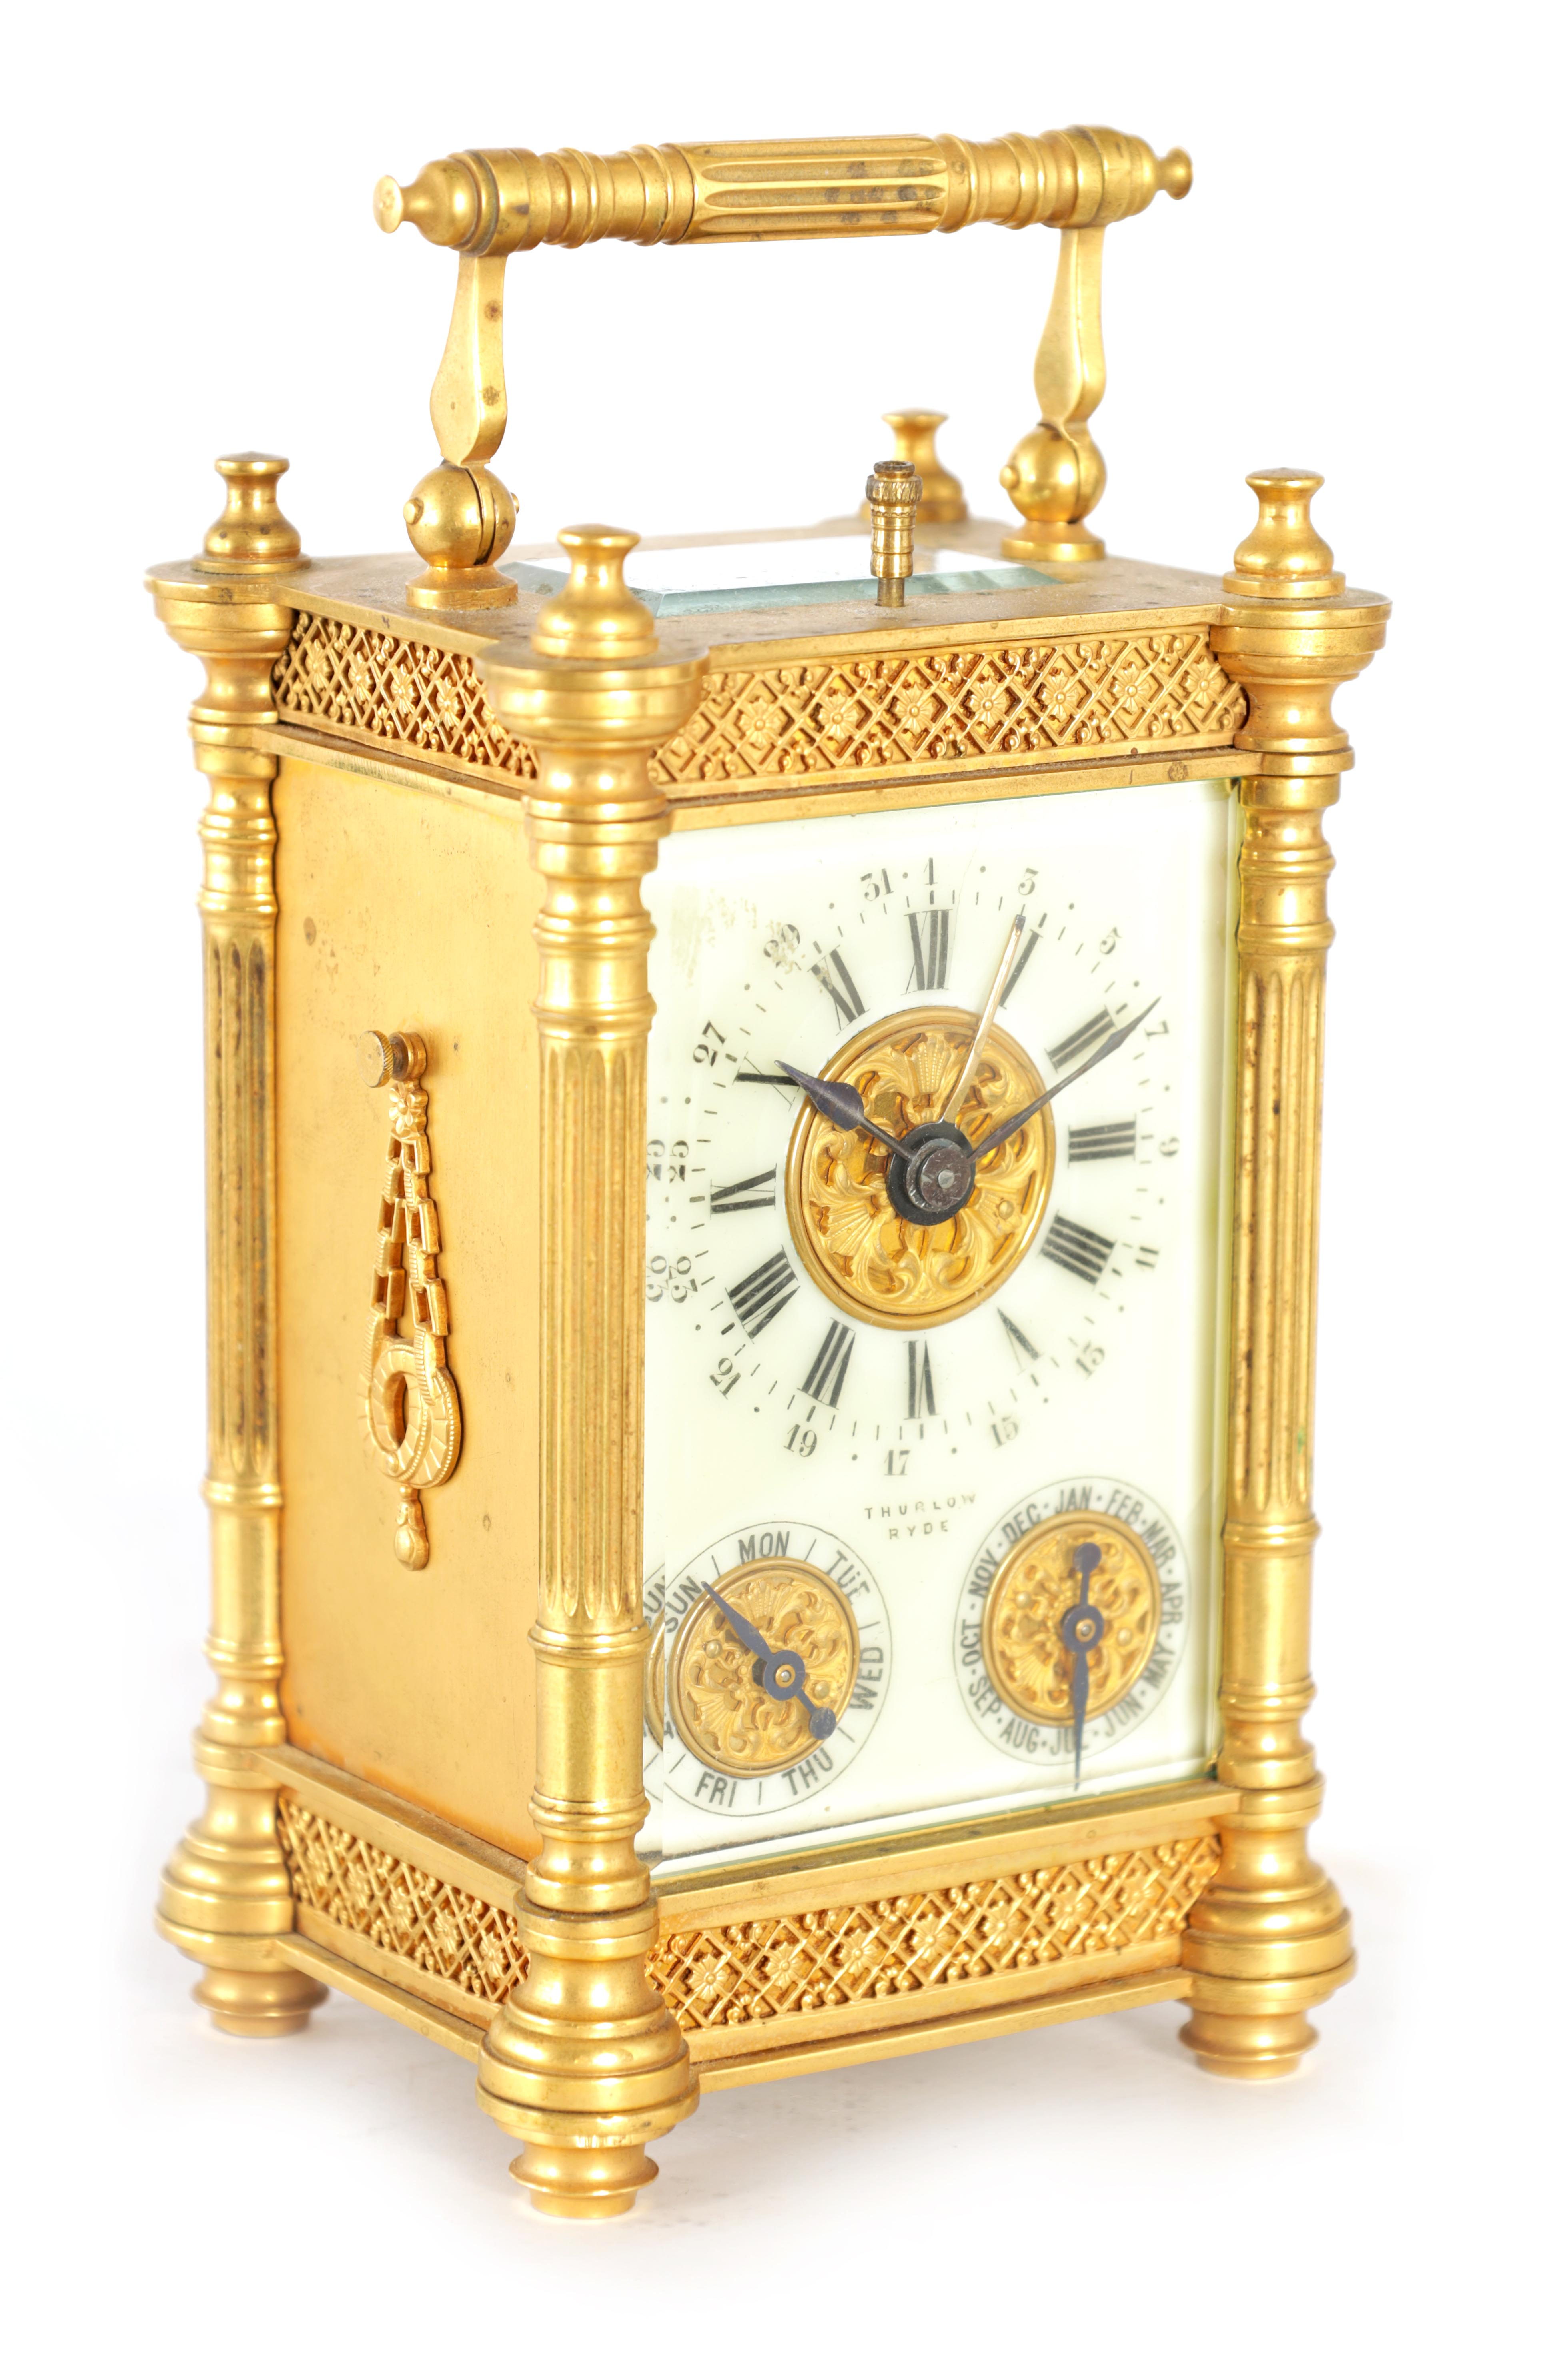 A LATE 19TH CENTURY FRENCH BRASS CARRIAGE CLOCK WITH CALENDAR the gilt case with pierced frieze